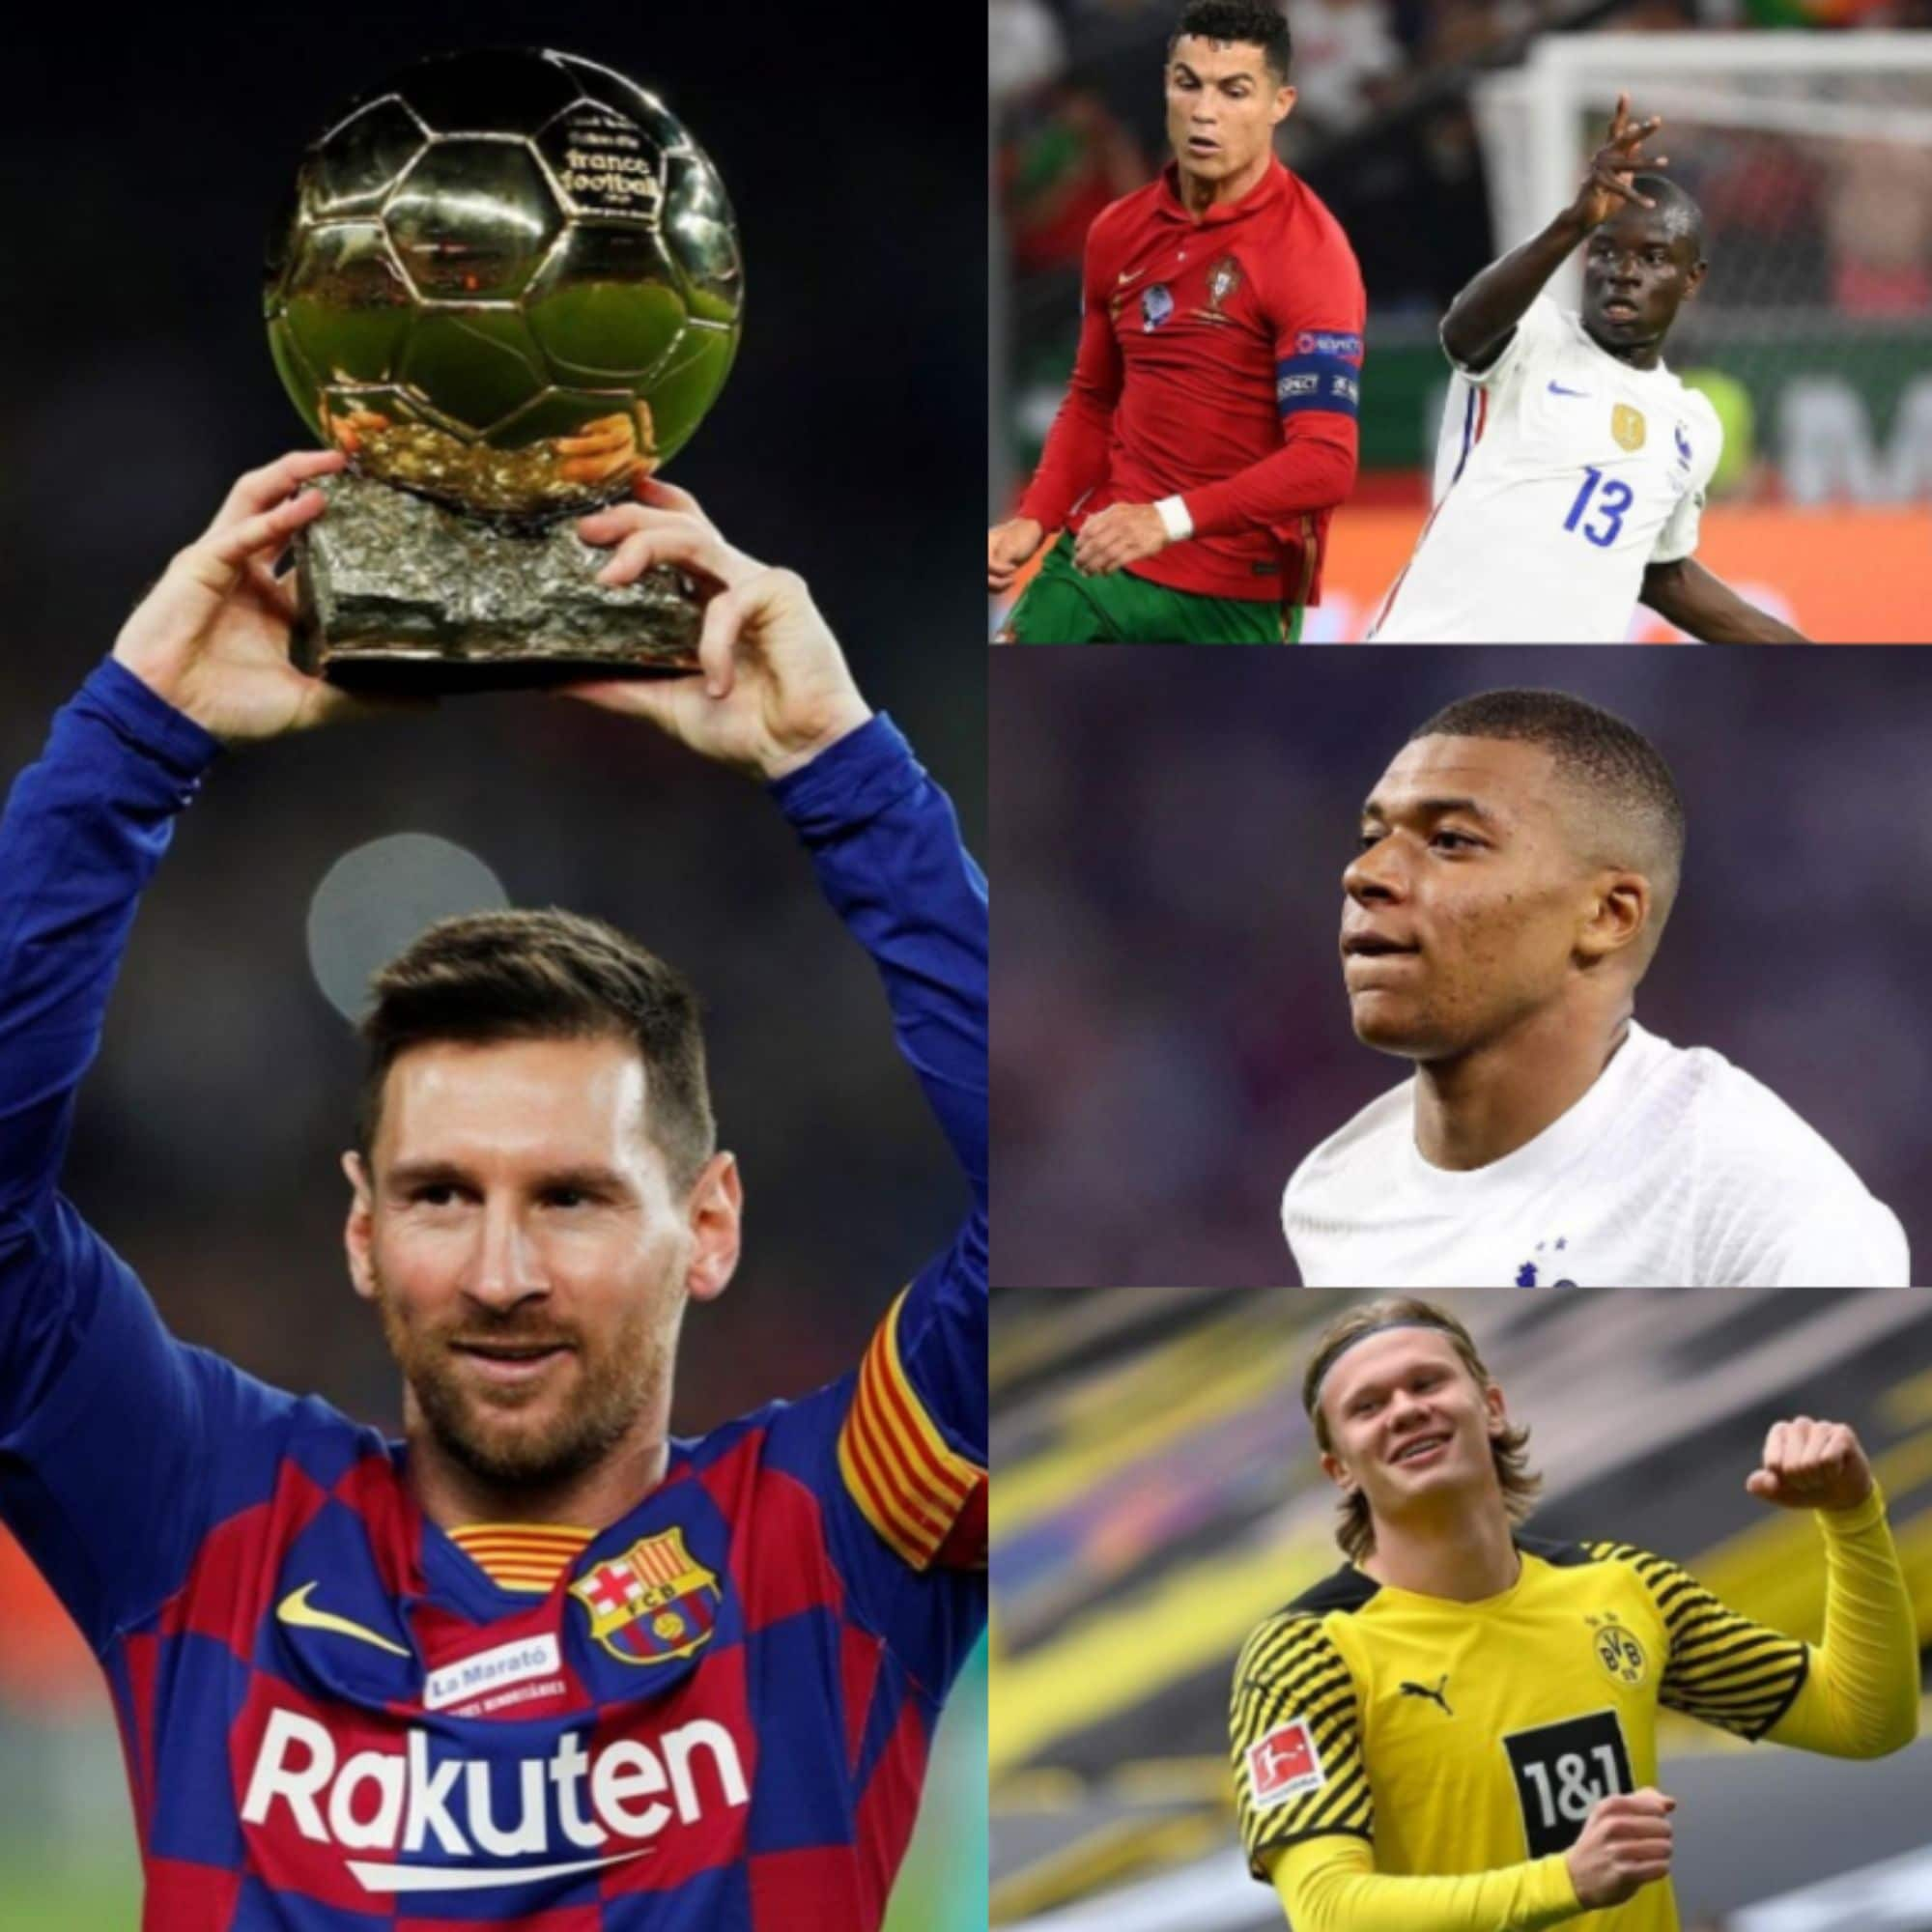 Ballon d'Or 2021: All Eyes On Newcomers – Kante, Mappe, Haaland To Challenge Messi